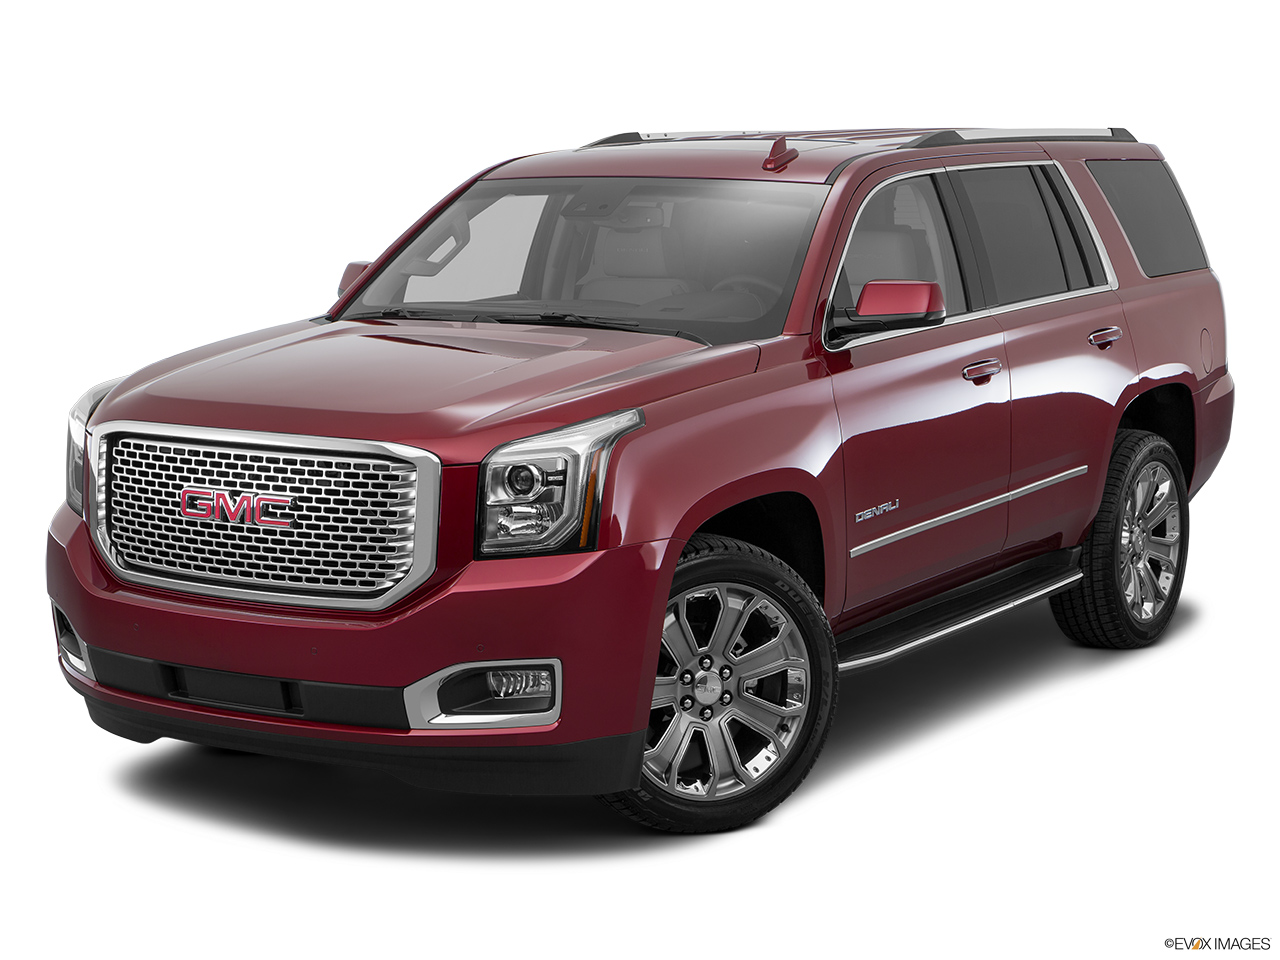 2018 gmc yukon denali prices in saudi arabia gulf specs reviews for riyadh jeddah dammam. Black Bedroom Furniture Sets. Home Design Ideas